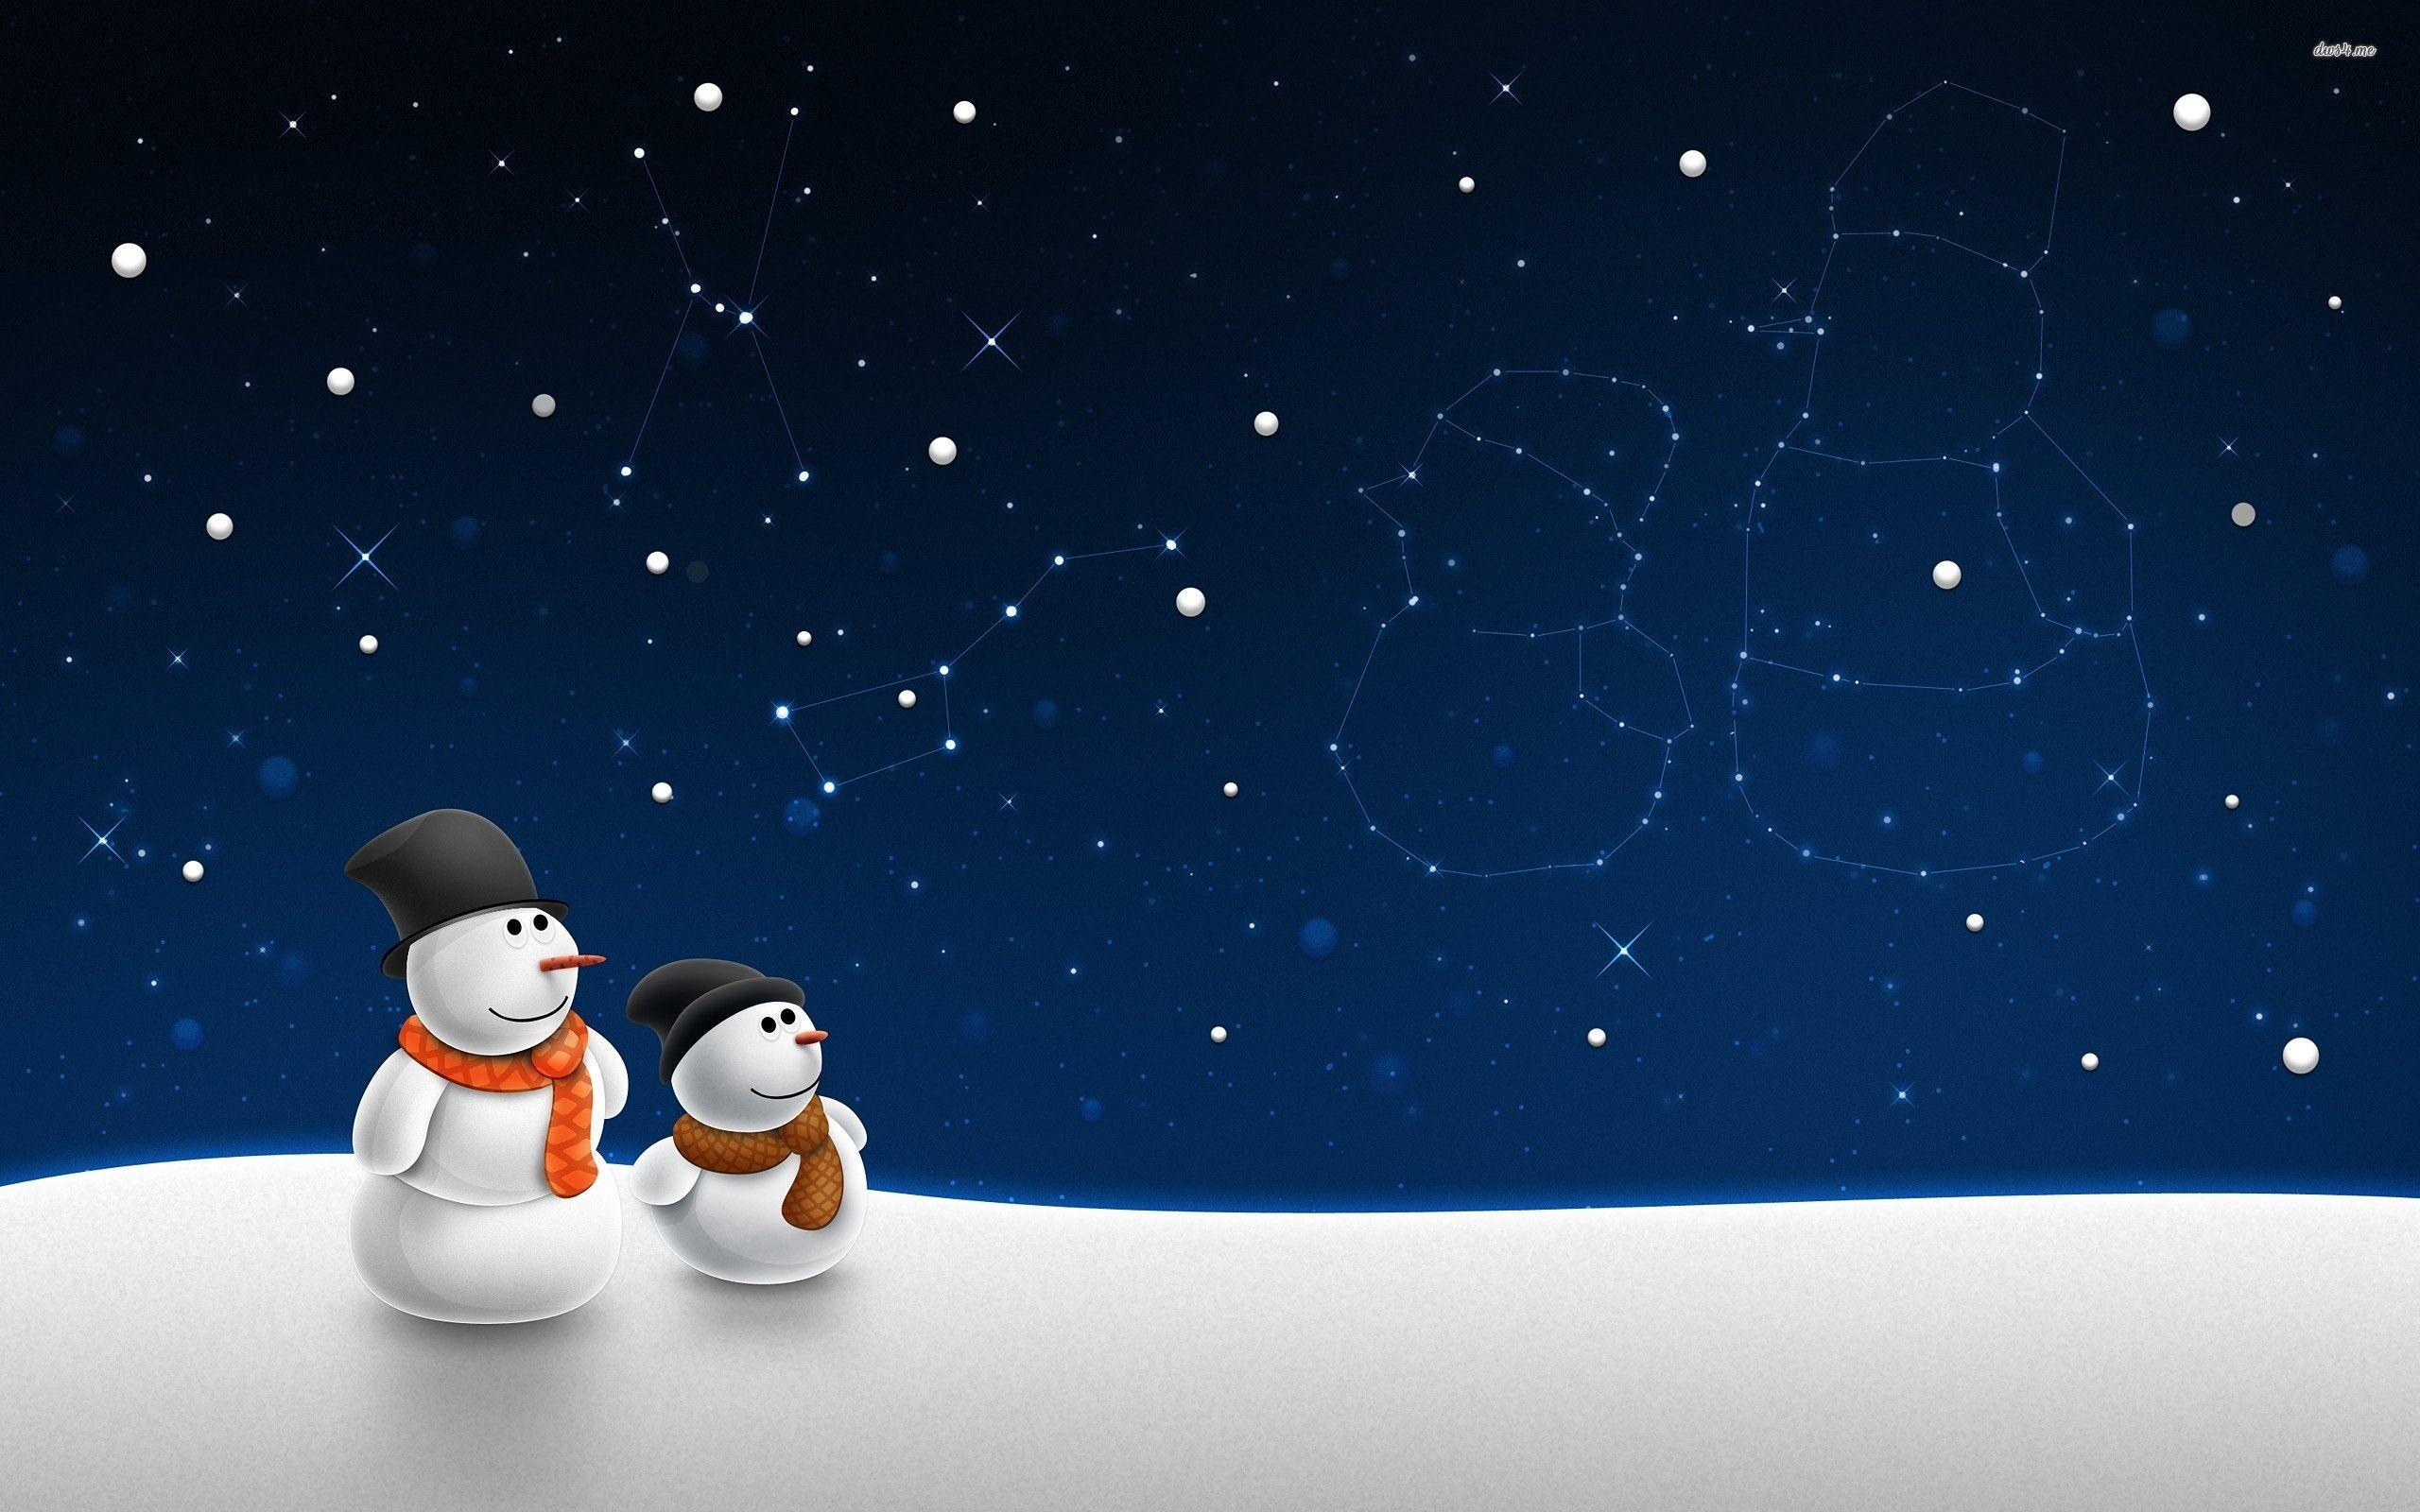 tag snowman desktop wallpapers - photo #14